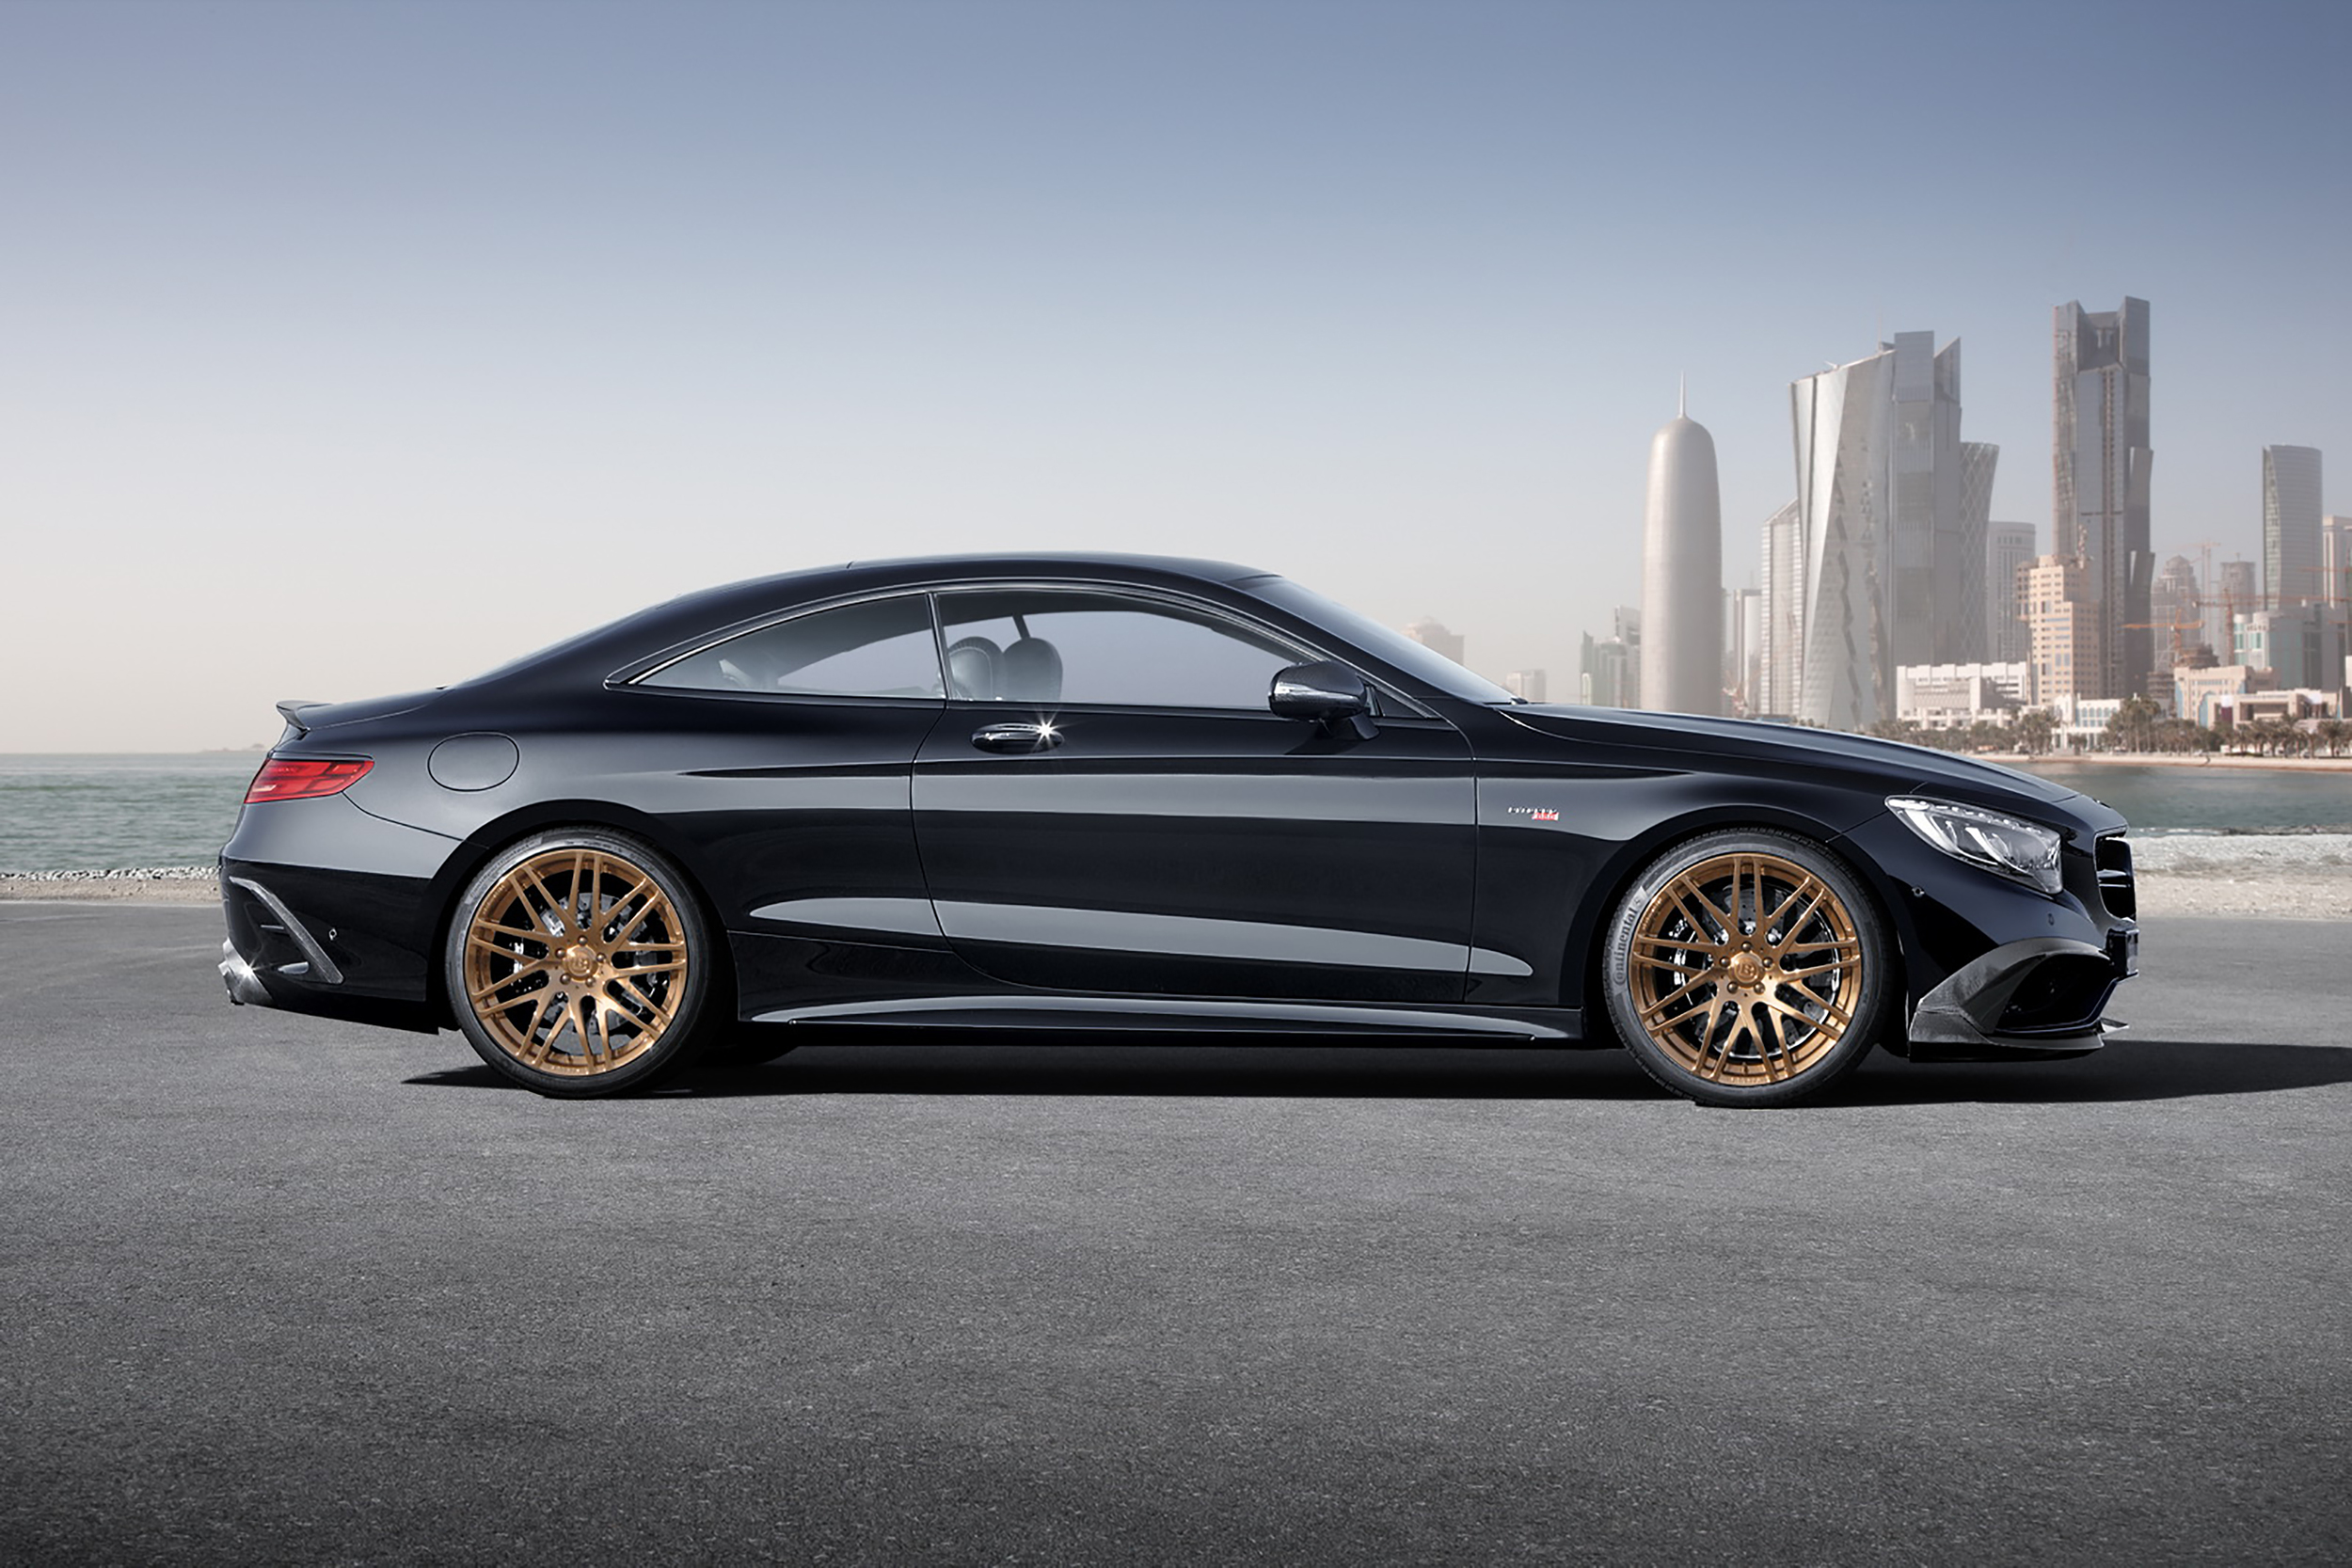 ' ' from the web at 'http://www.blogcdn.com/slideshows/images/slides/335/948/3/S3359483/slug/l/brabus-s-class-coupe-14-1.jpg'